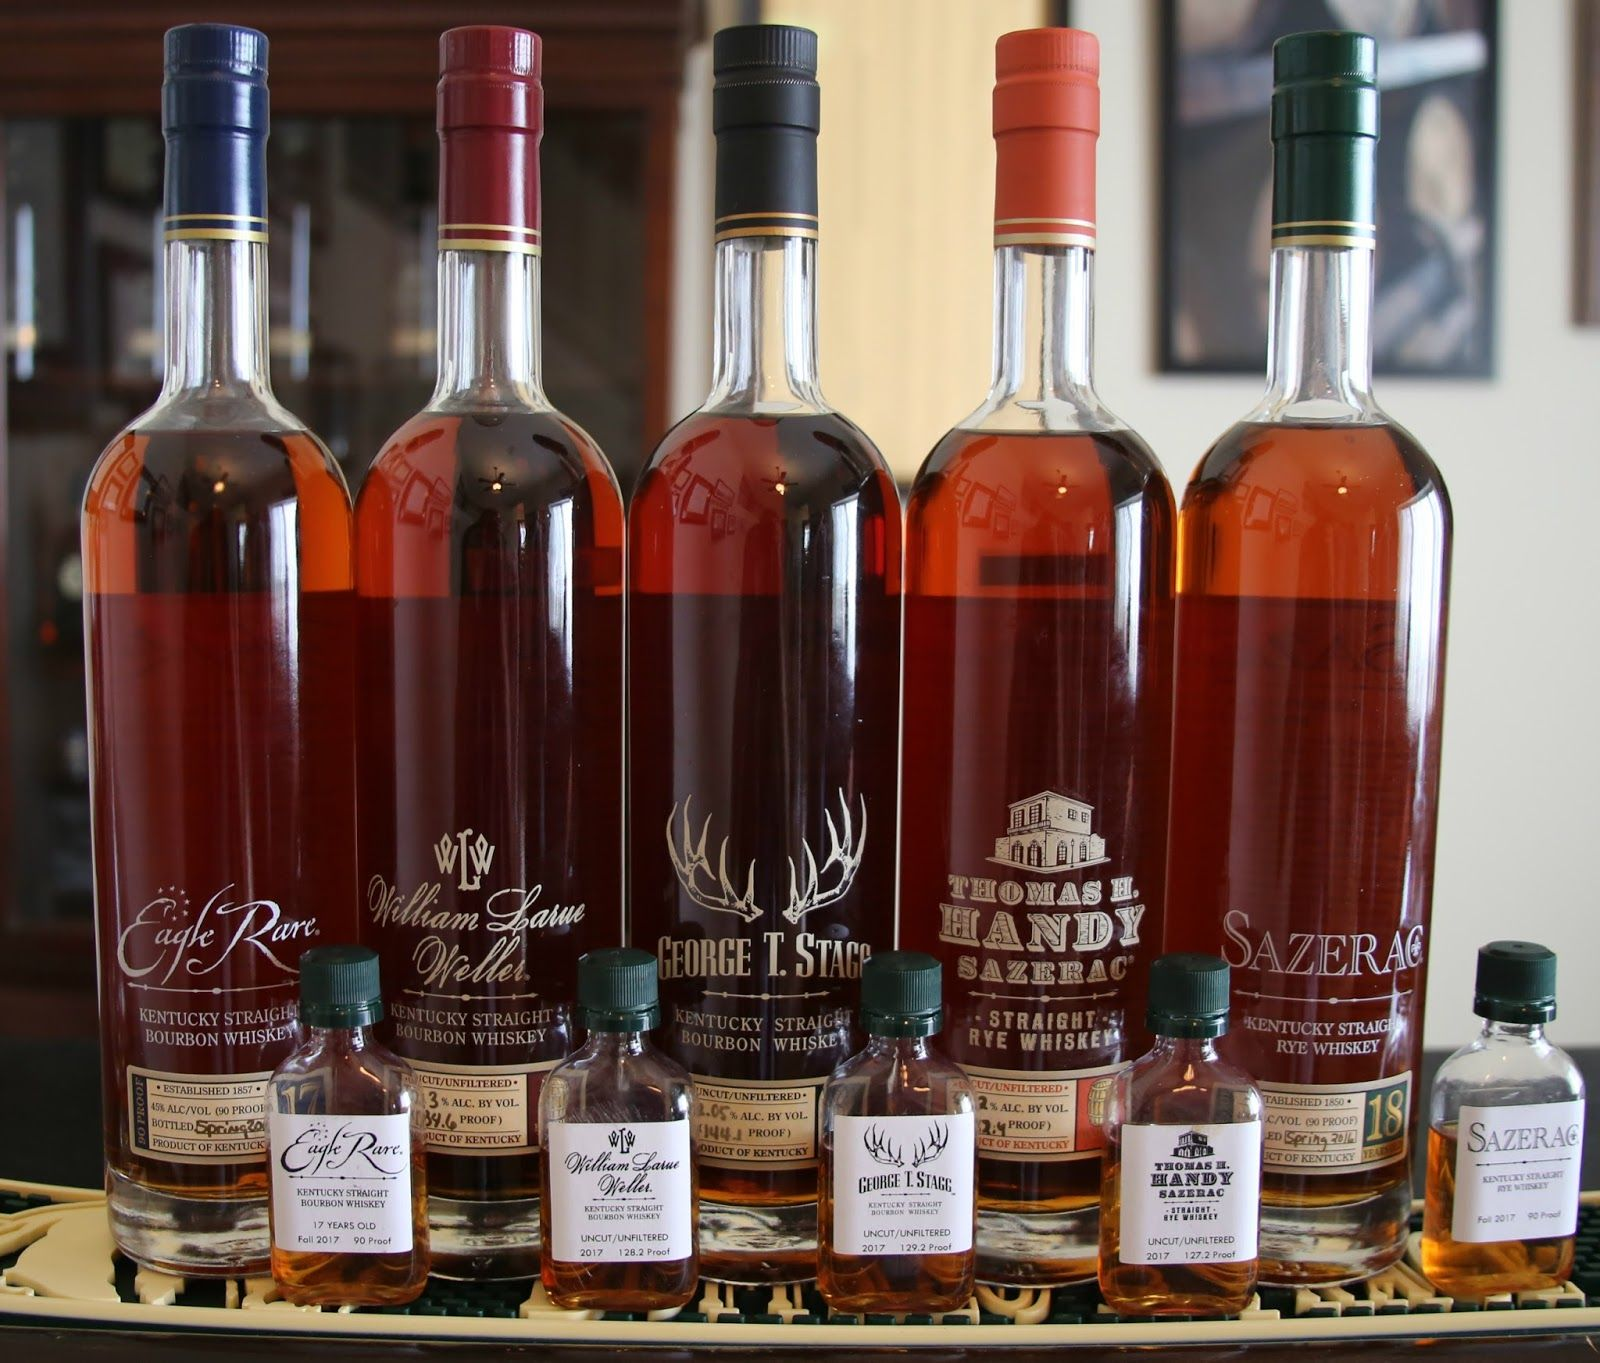 Buffalo Trace Antique Collection Bottles Fine Wine And Spirits Distilling Alcohol Distilled Spirit